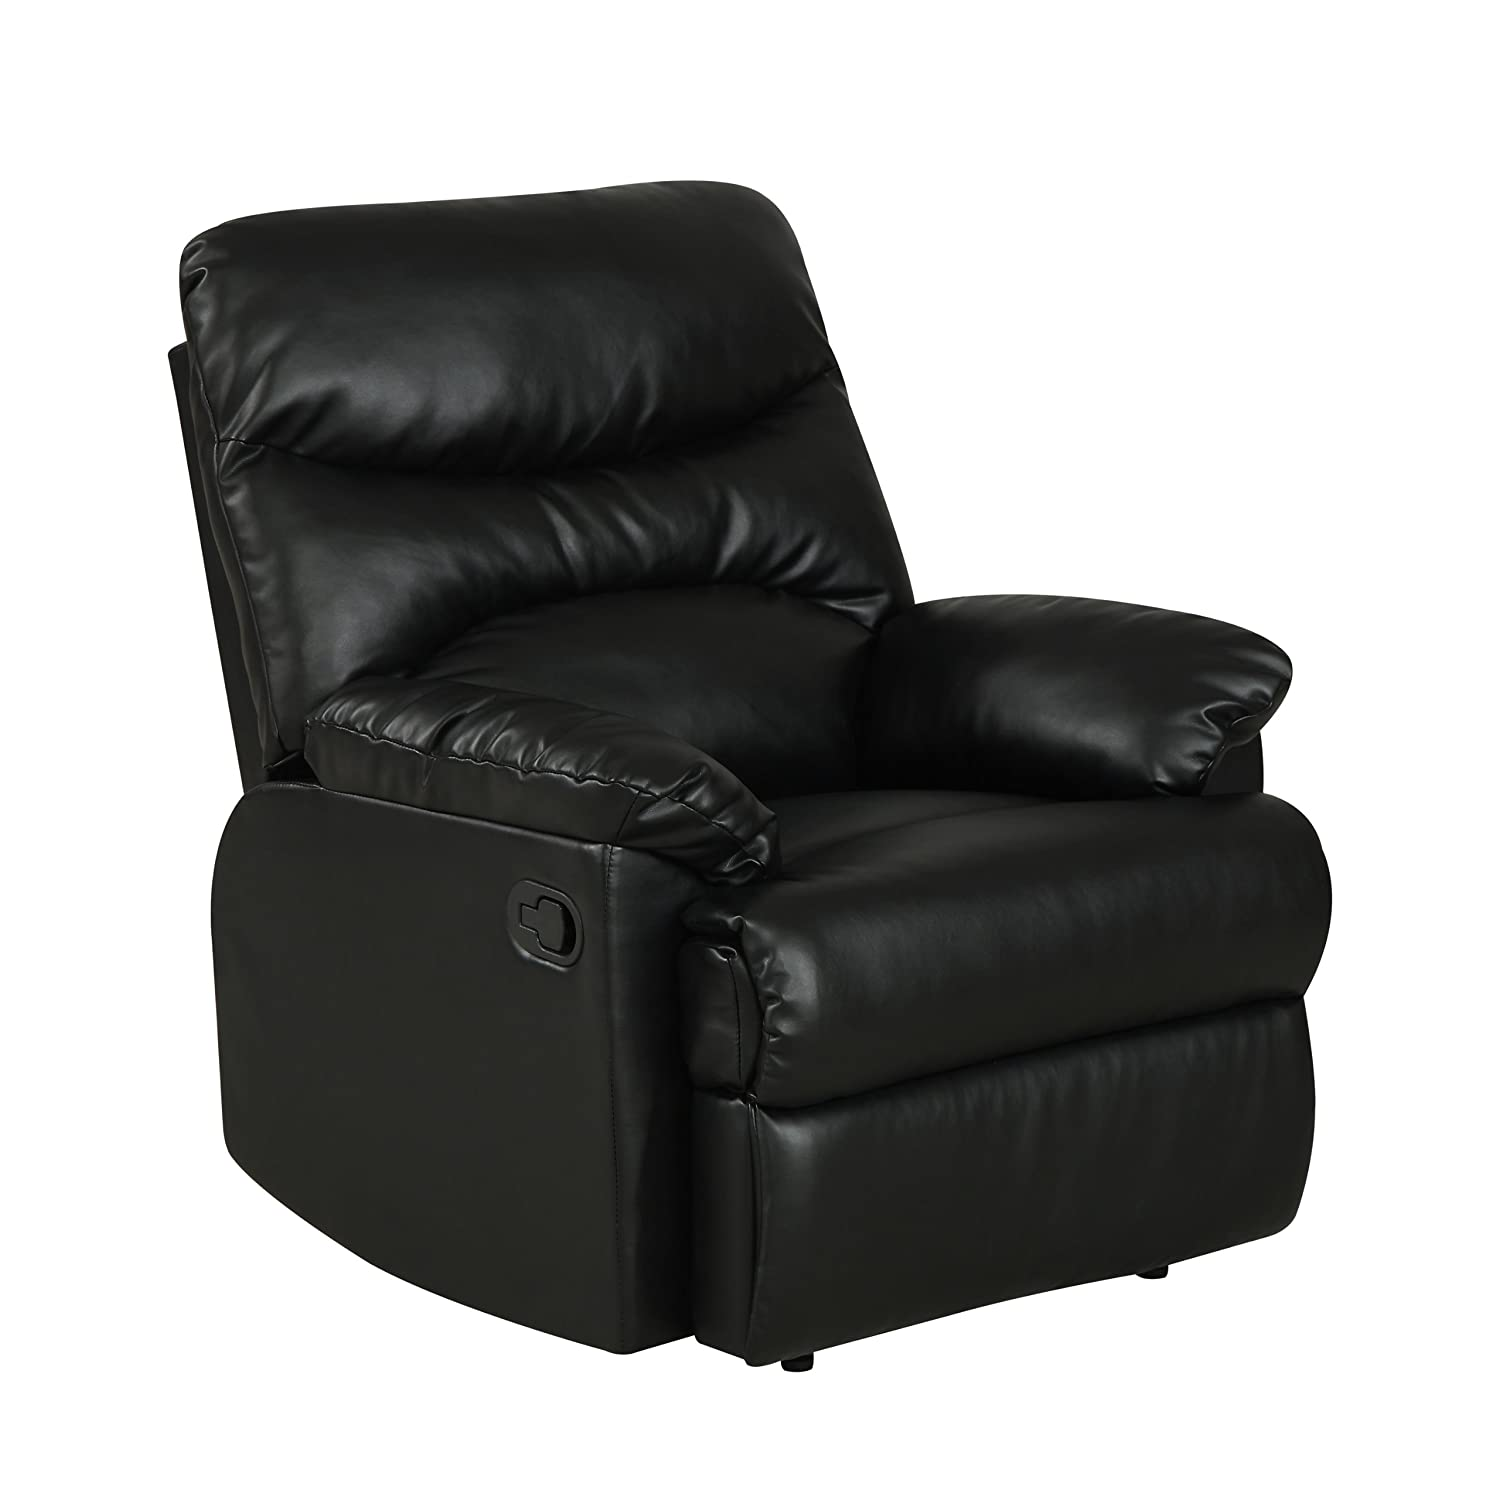 ProLounger Wall Hugger Renu Leather Recliner  sc 1 st  Best Recliners & Best Space Saving Recliners Recommended | Best Recliners islam-shia.org